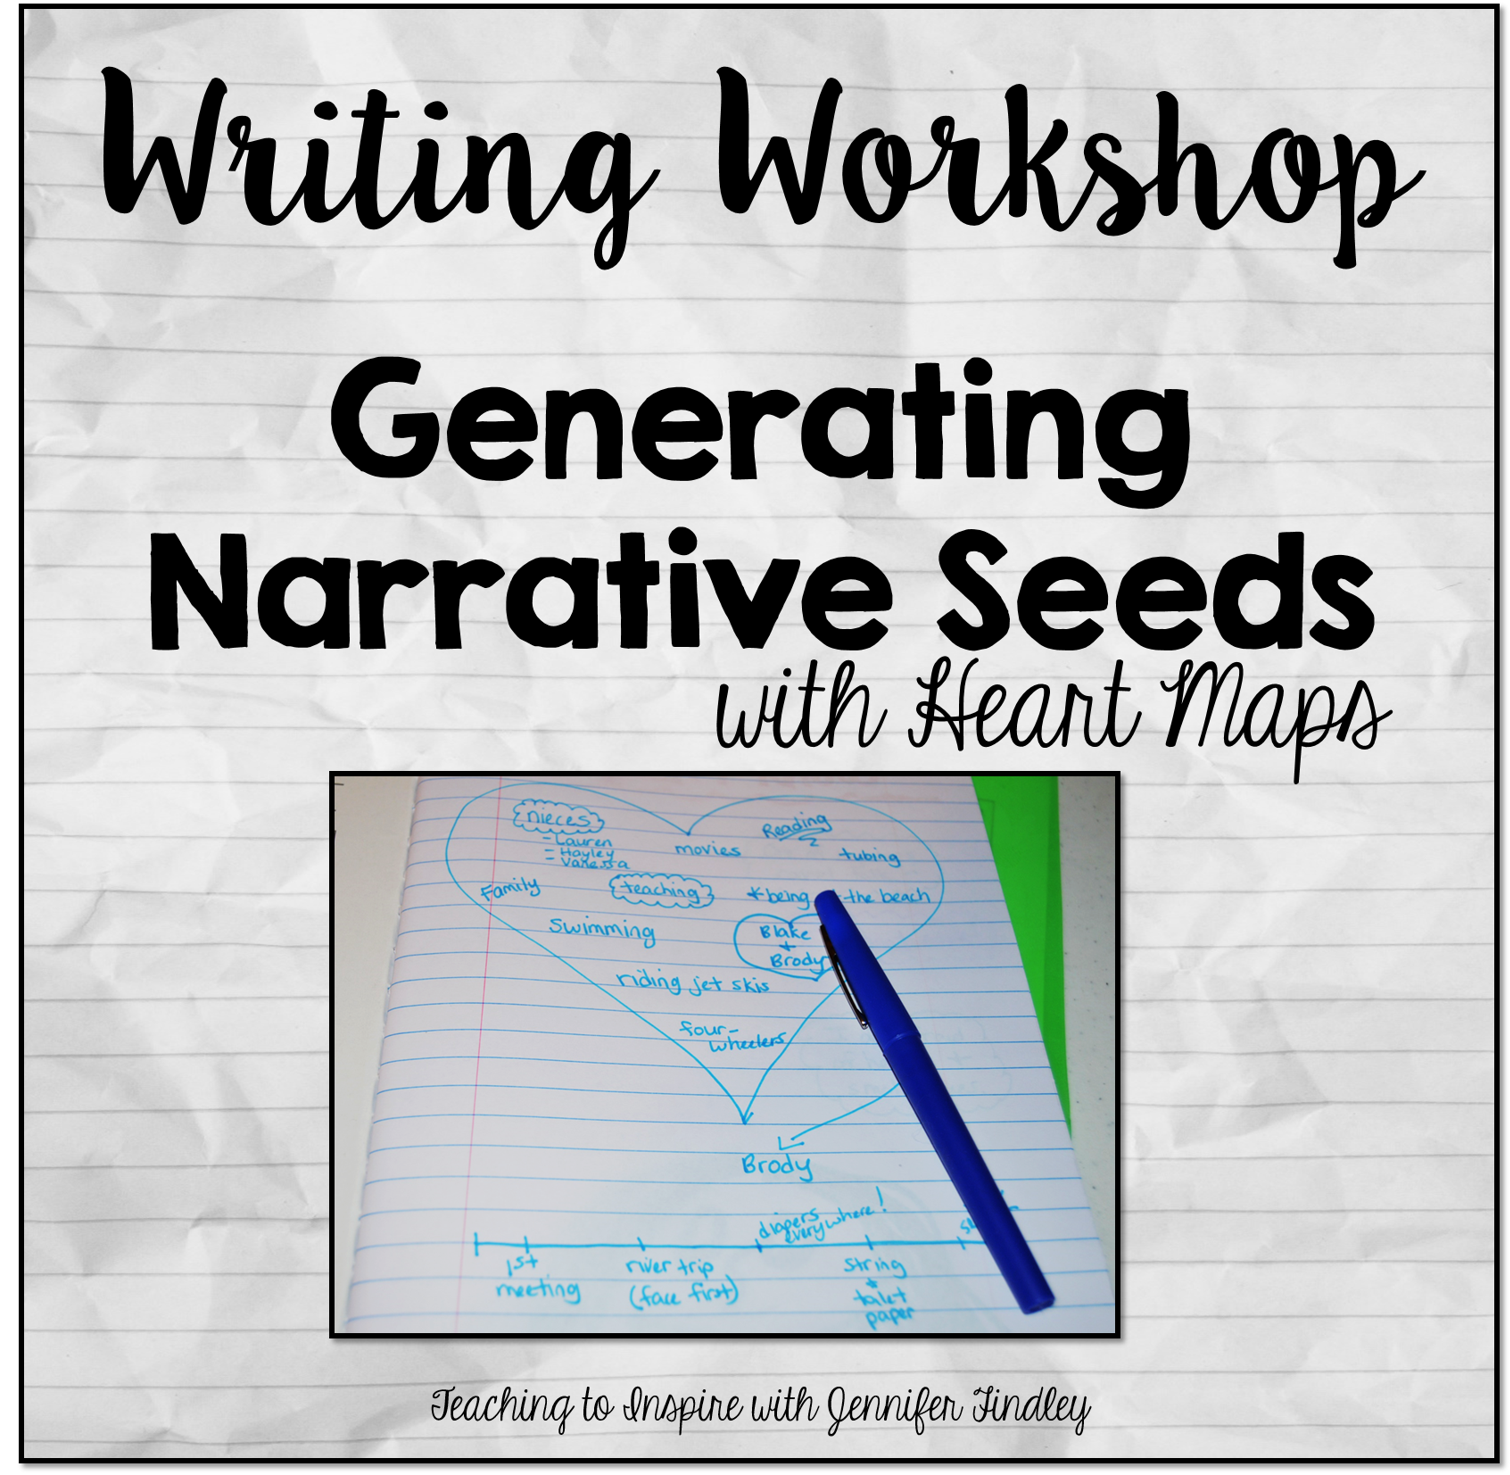 Writing workshop topics